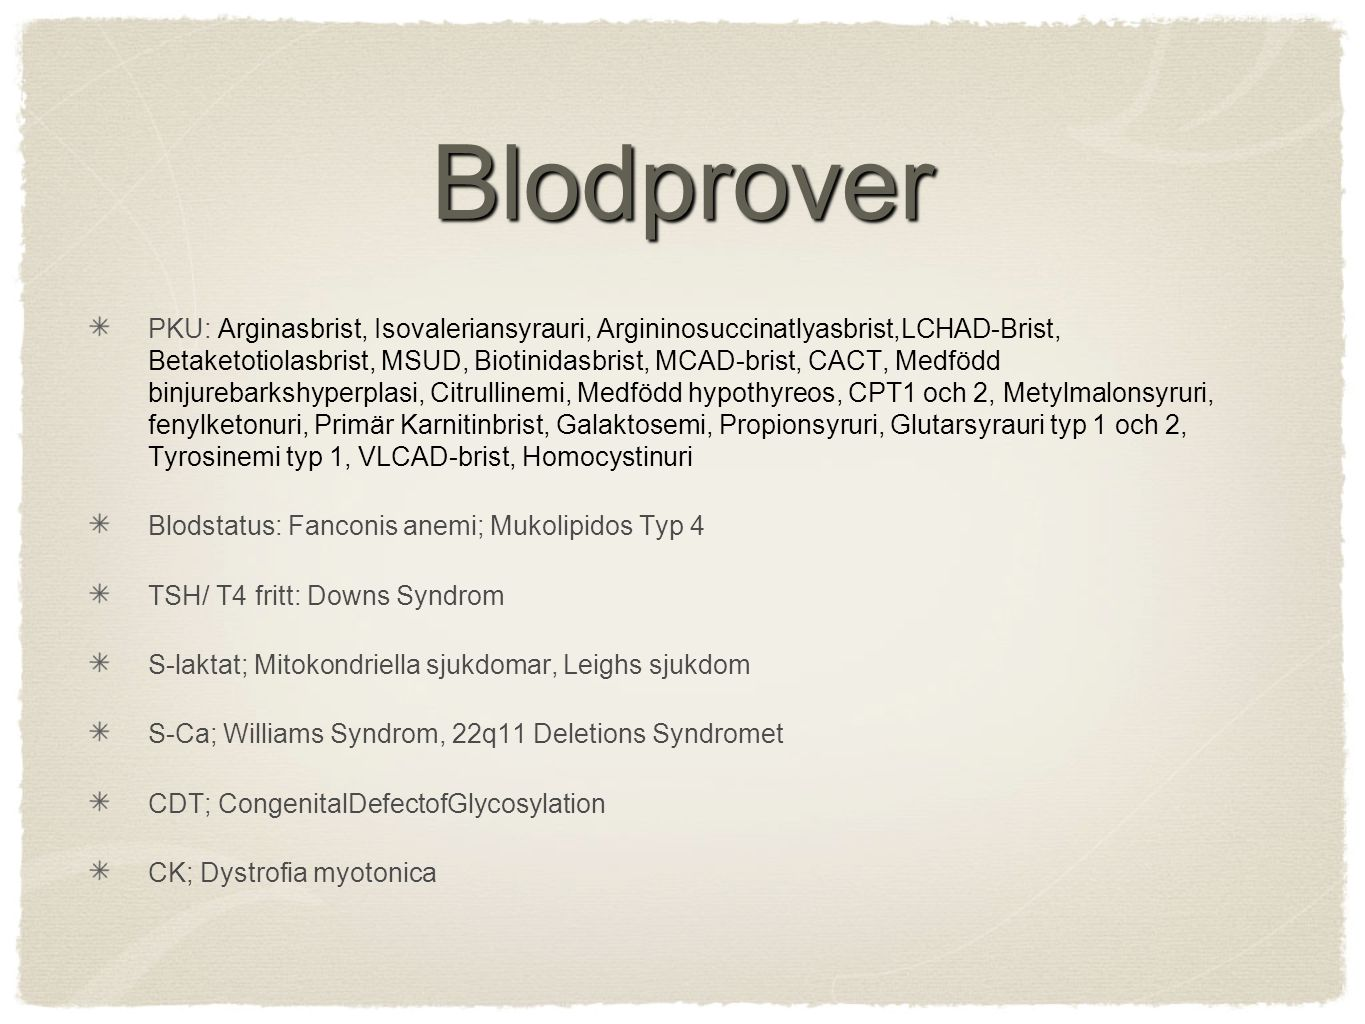 Blodprover